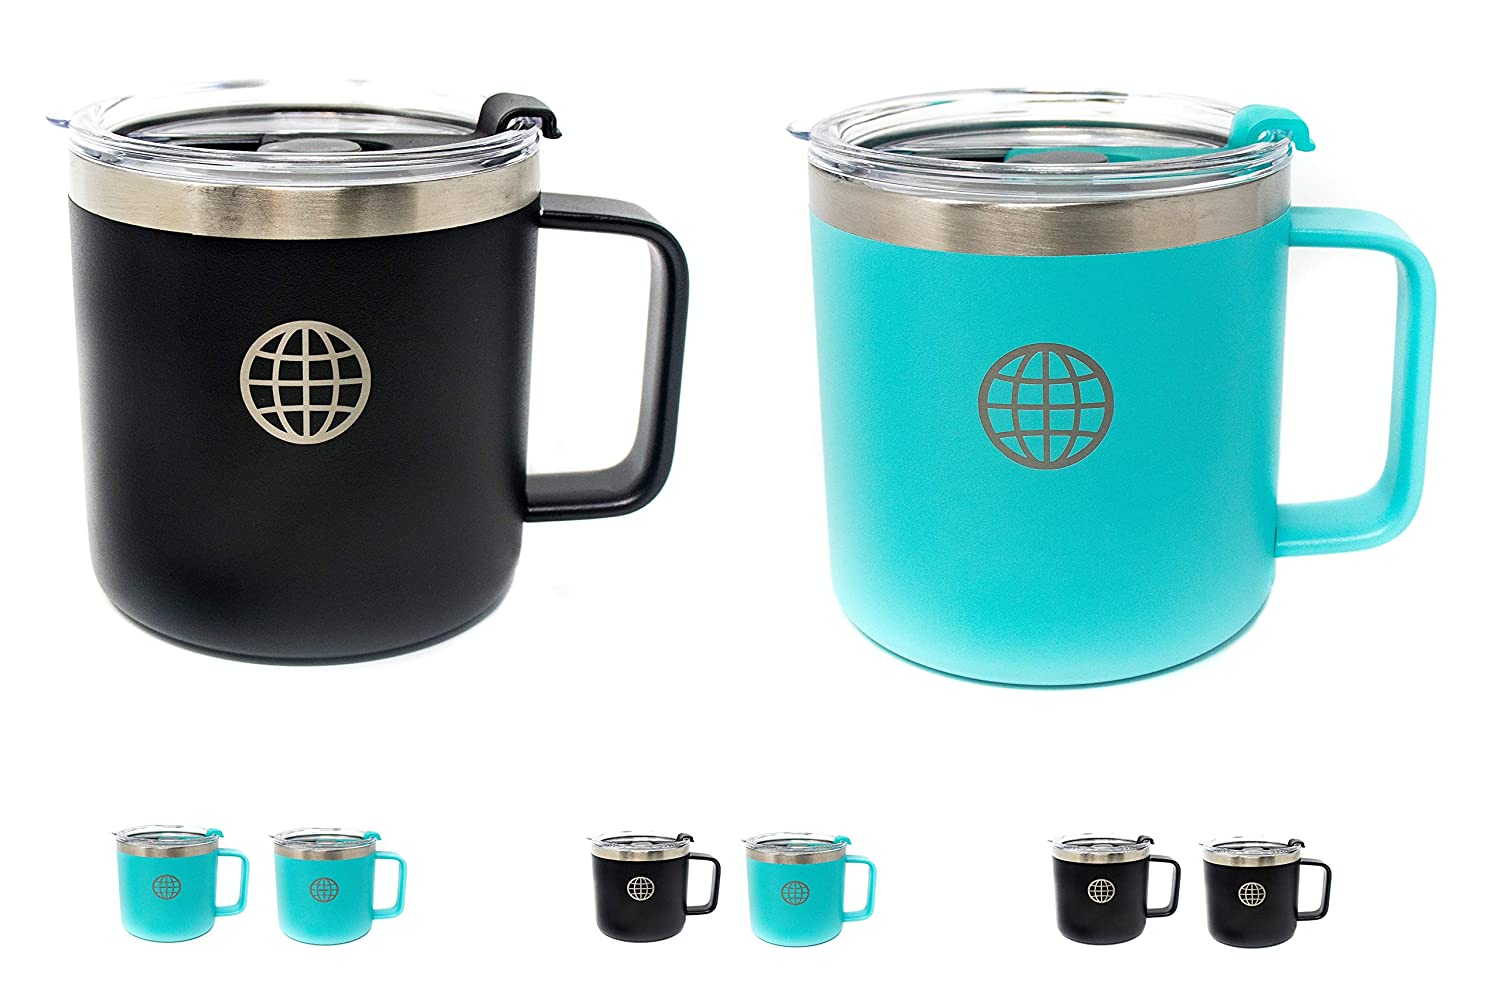 Double Coffee Stainless And Oz Wall Lid Handle Large Steel Products 14 2 Jtsc Mug Gifts Insulated For Men With Cool Pack sCdQxBthr